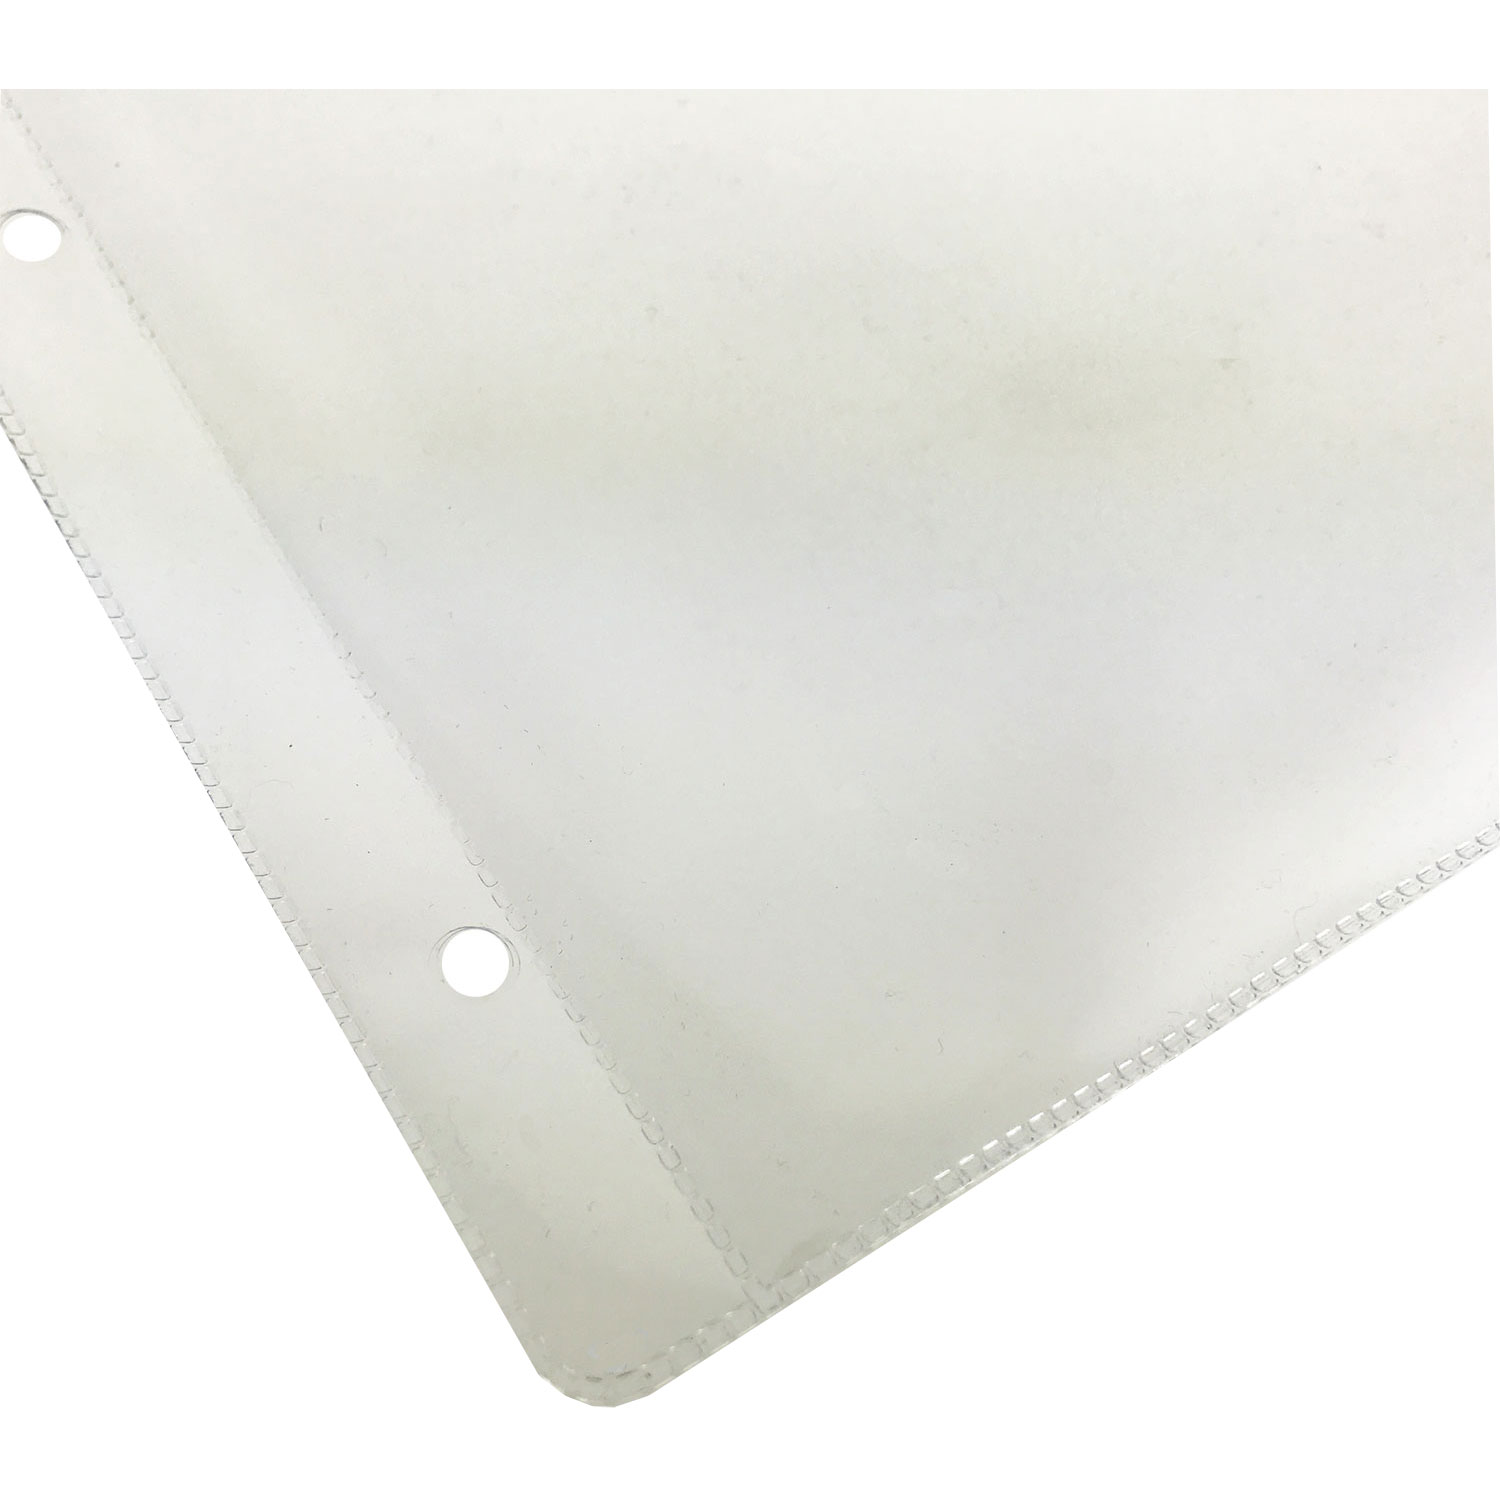 KC200100SCP4 4-Hole Punched Heavy-Duty Plastic Pockets